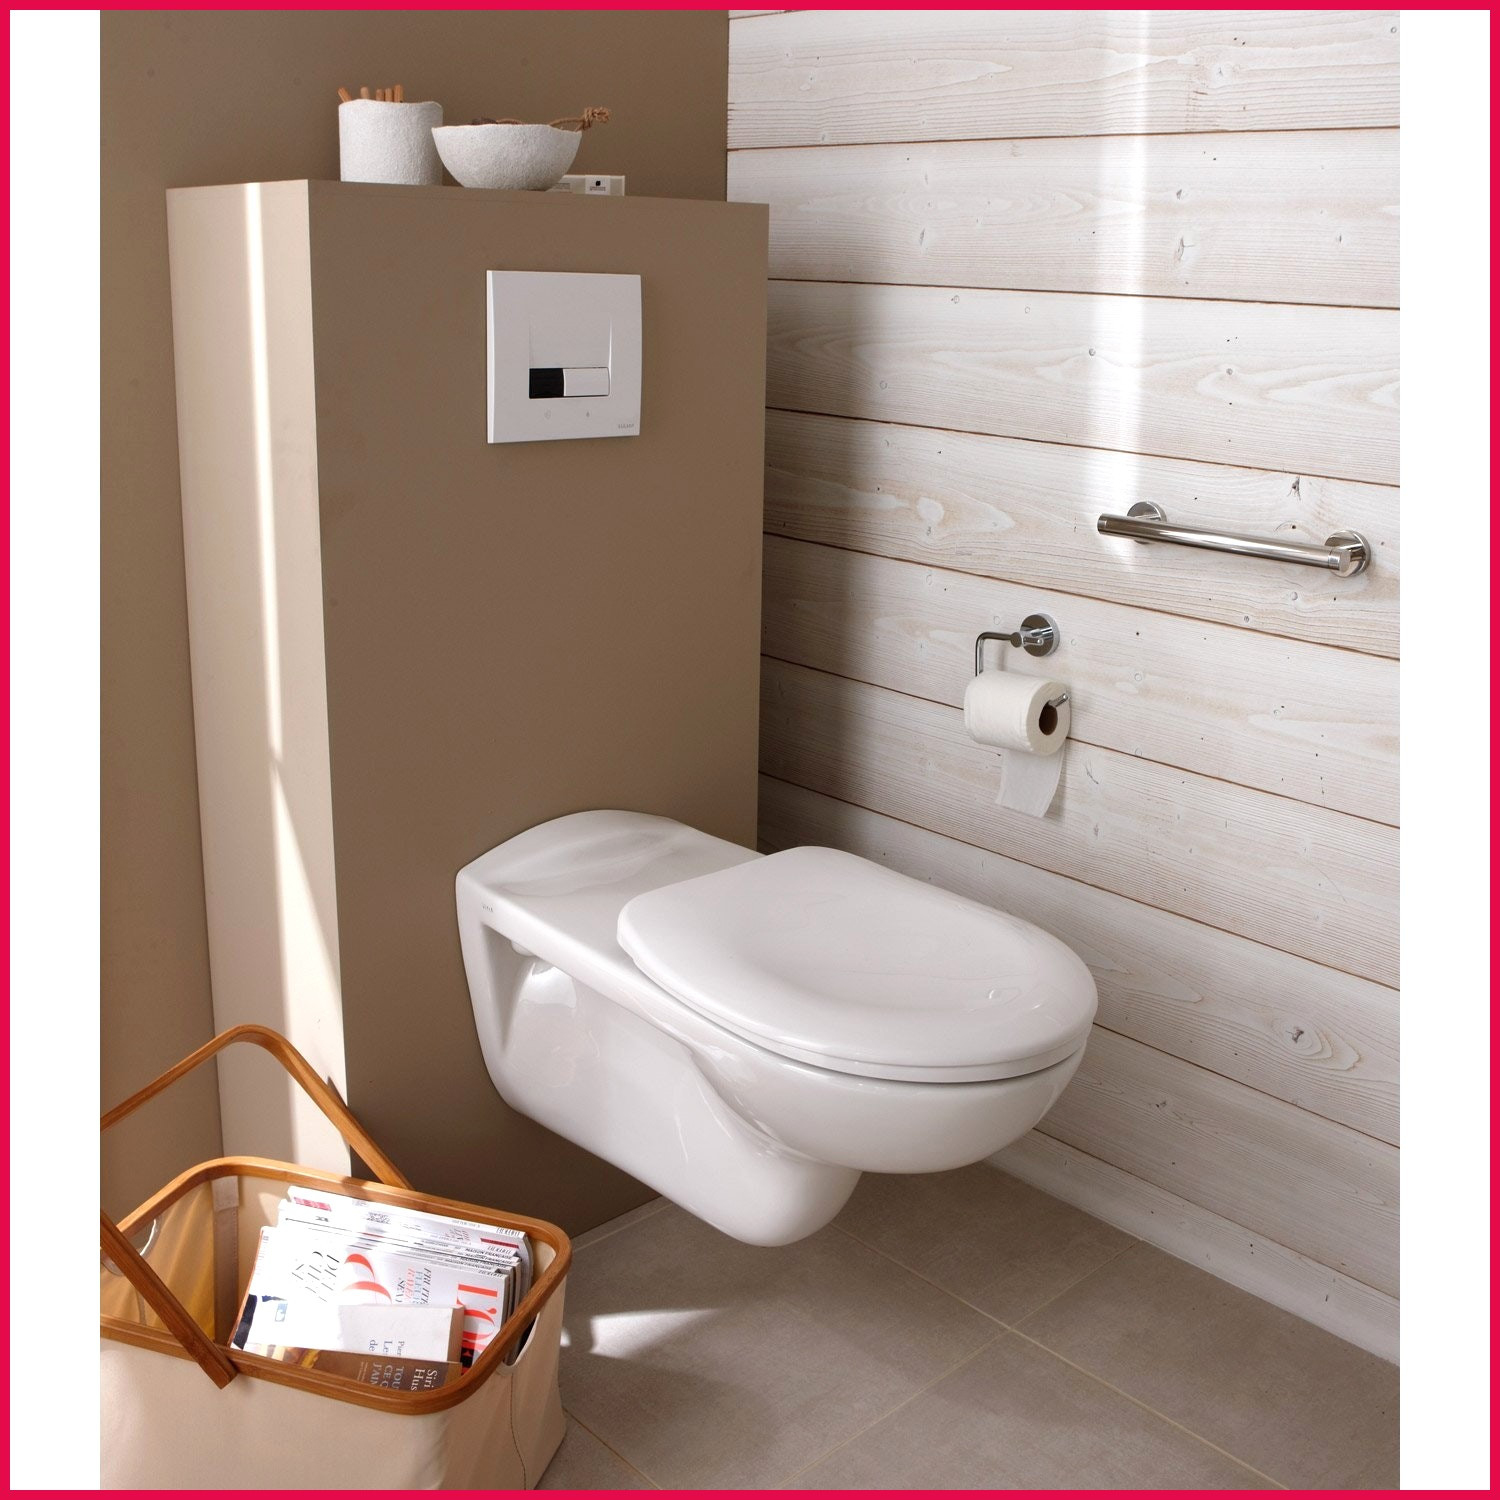 Bride De Plancher Leroy Merlin Inspirant Galerie Wc Suspendu Sans Bride Grohe Latest Wc Suspendus Wc Suspendu